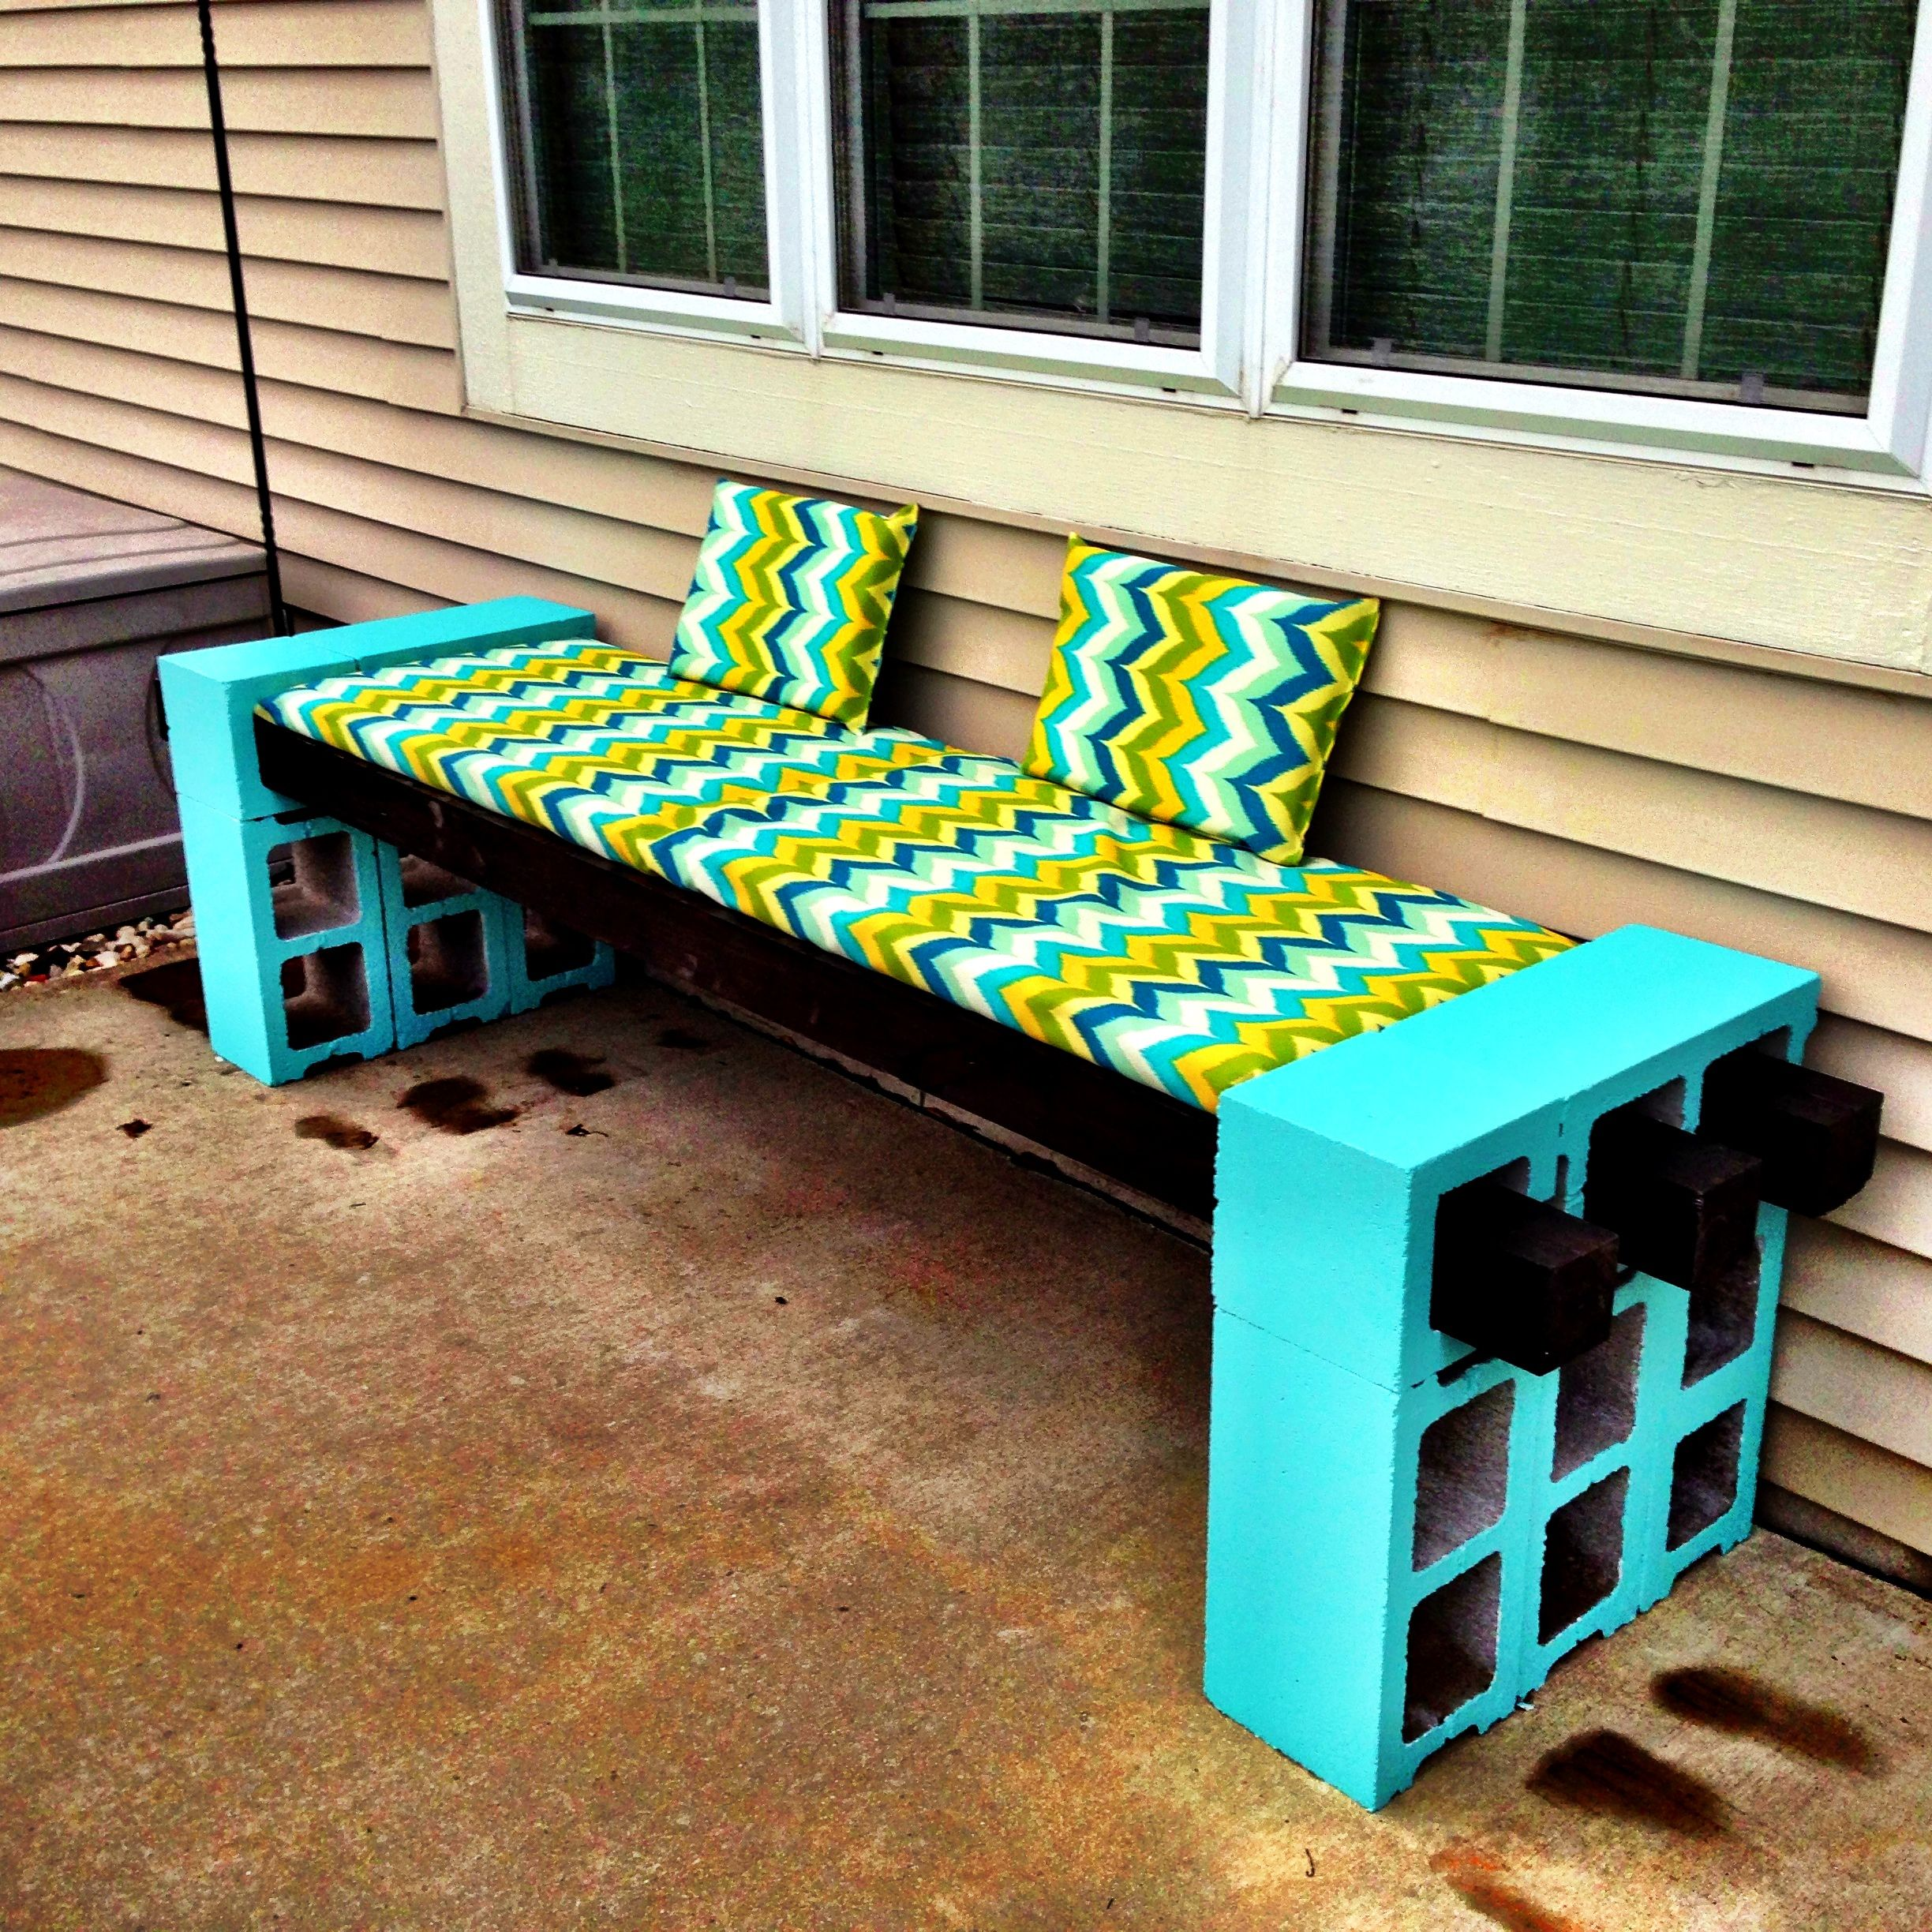 Diy patio furniture cinder blocks - Garden Furntiure Ideas Diy Cinder Block Bench Blue Paint Colorful Decorative Pillows And Pad Backyard Gardening